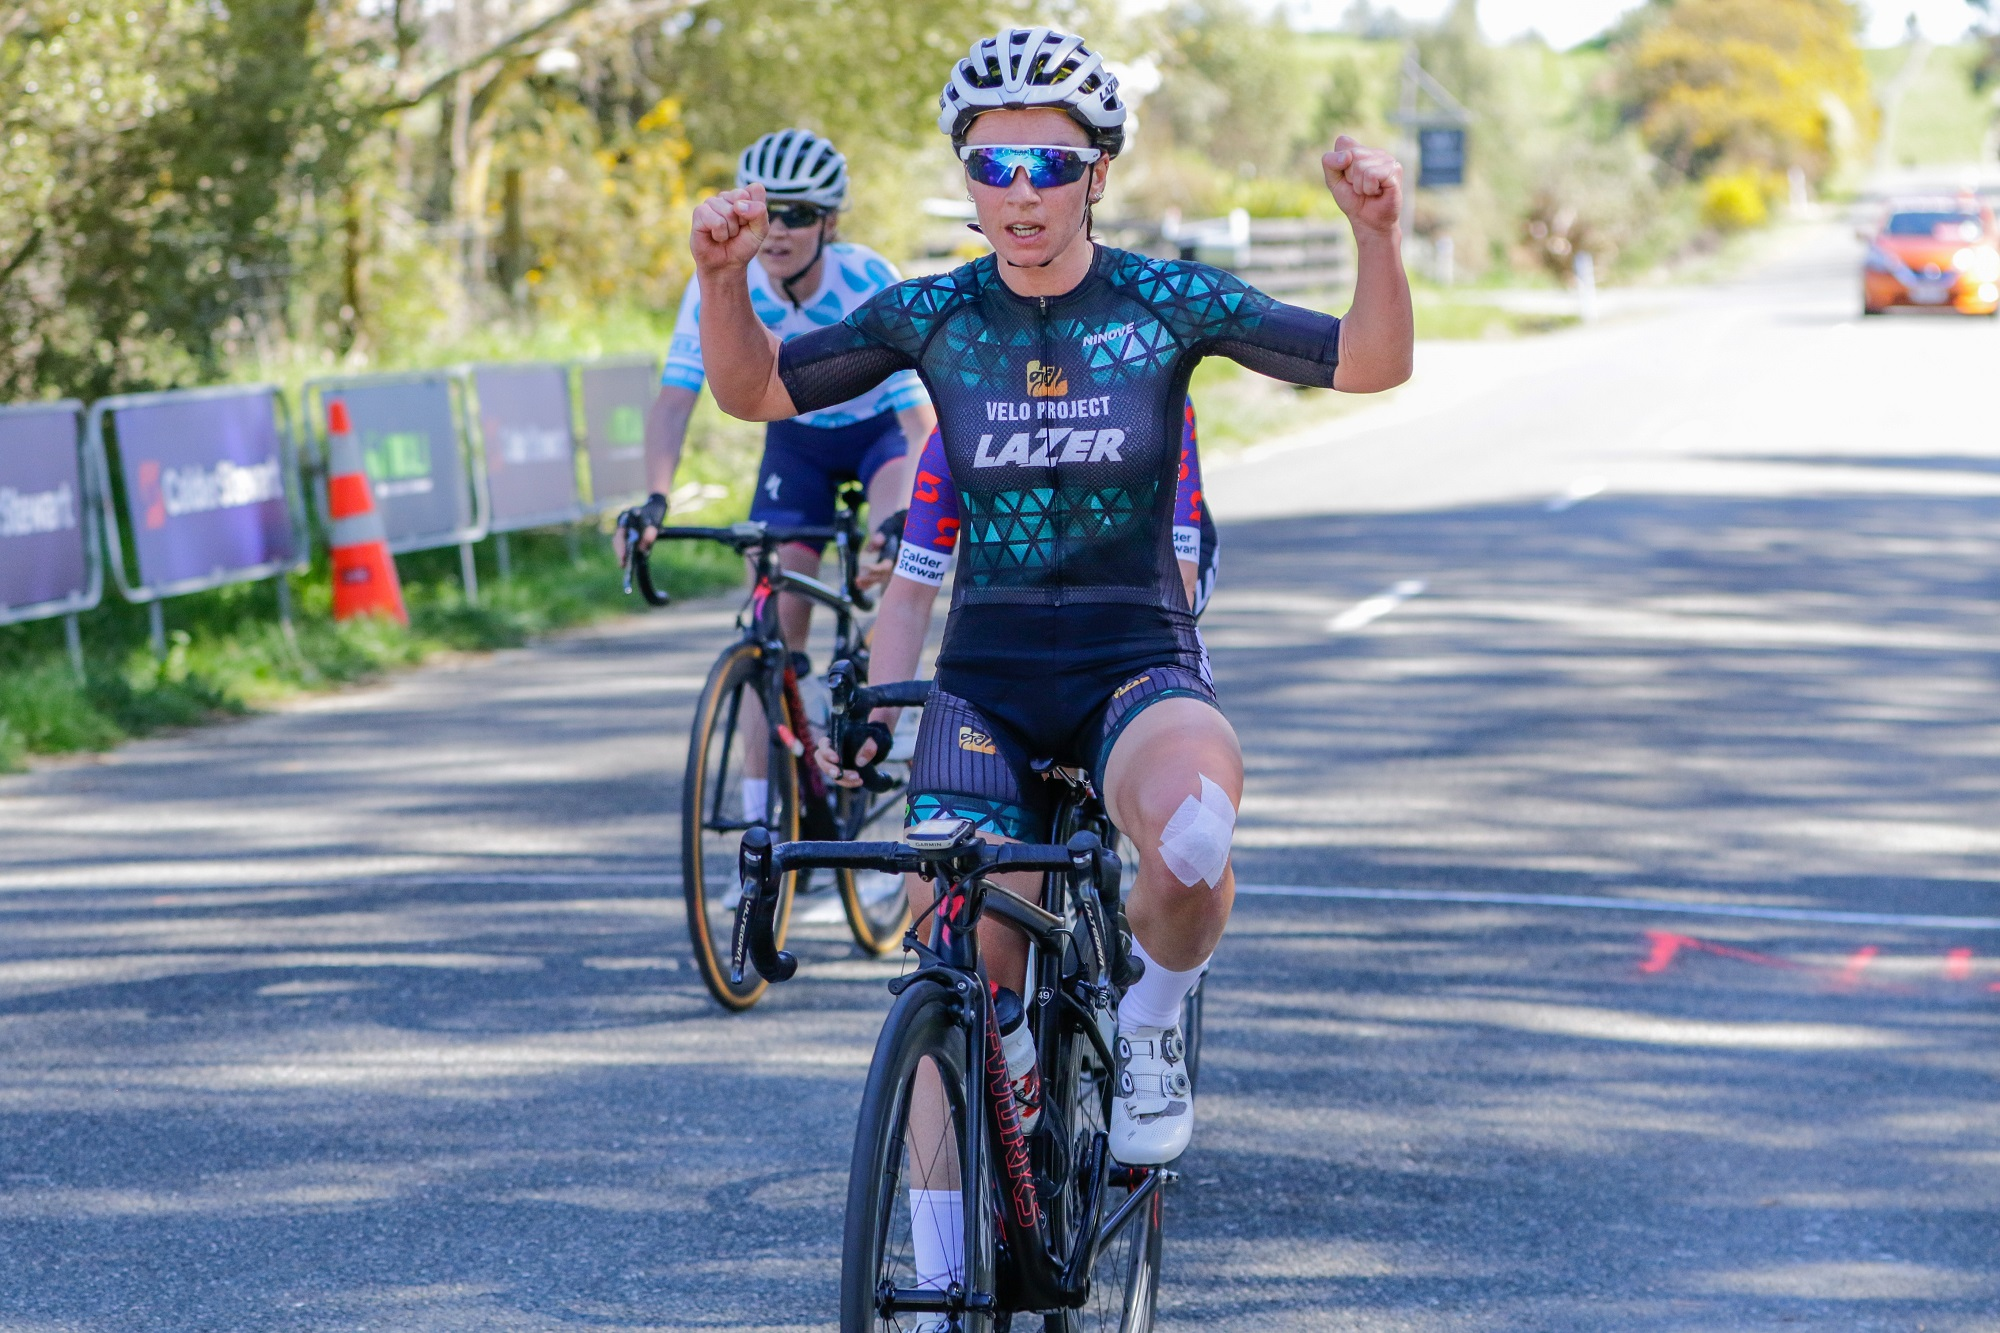 Photo: Oceania women's' road race champion Sharlotte Lucas wins the fifth round of the Calder Stewart Cycling Series in Nelson today. Pic: rickoshayphotos